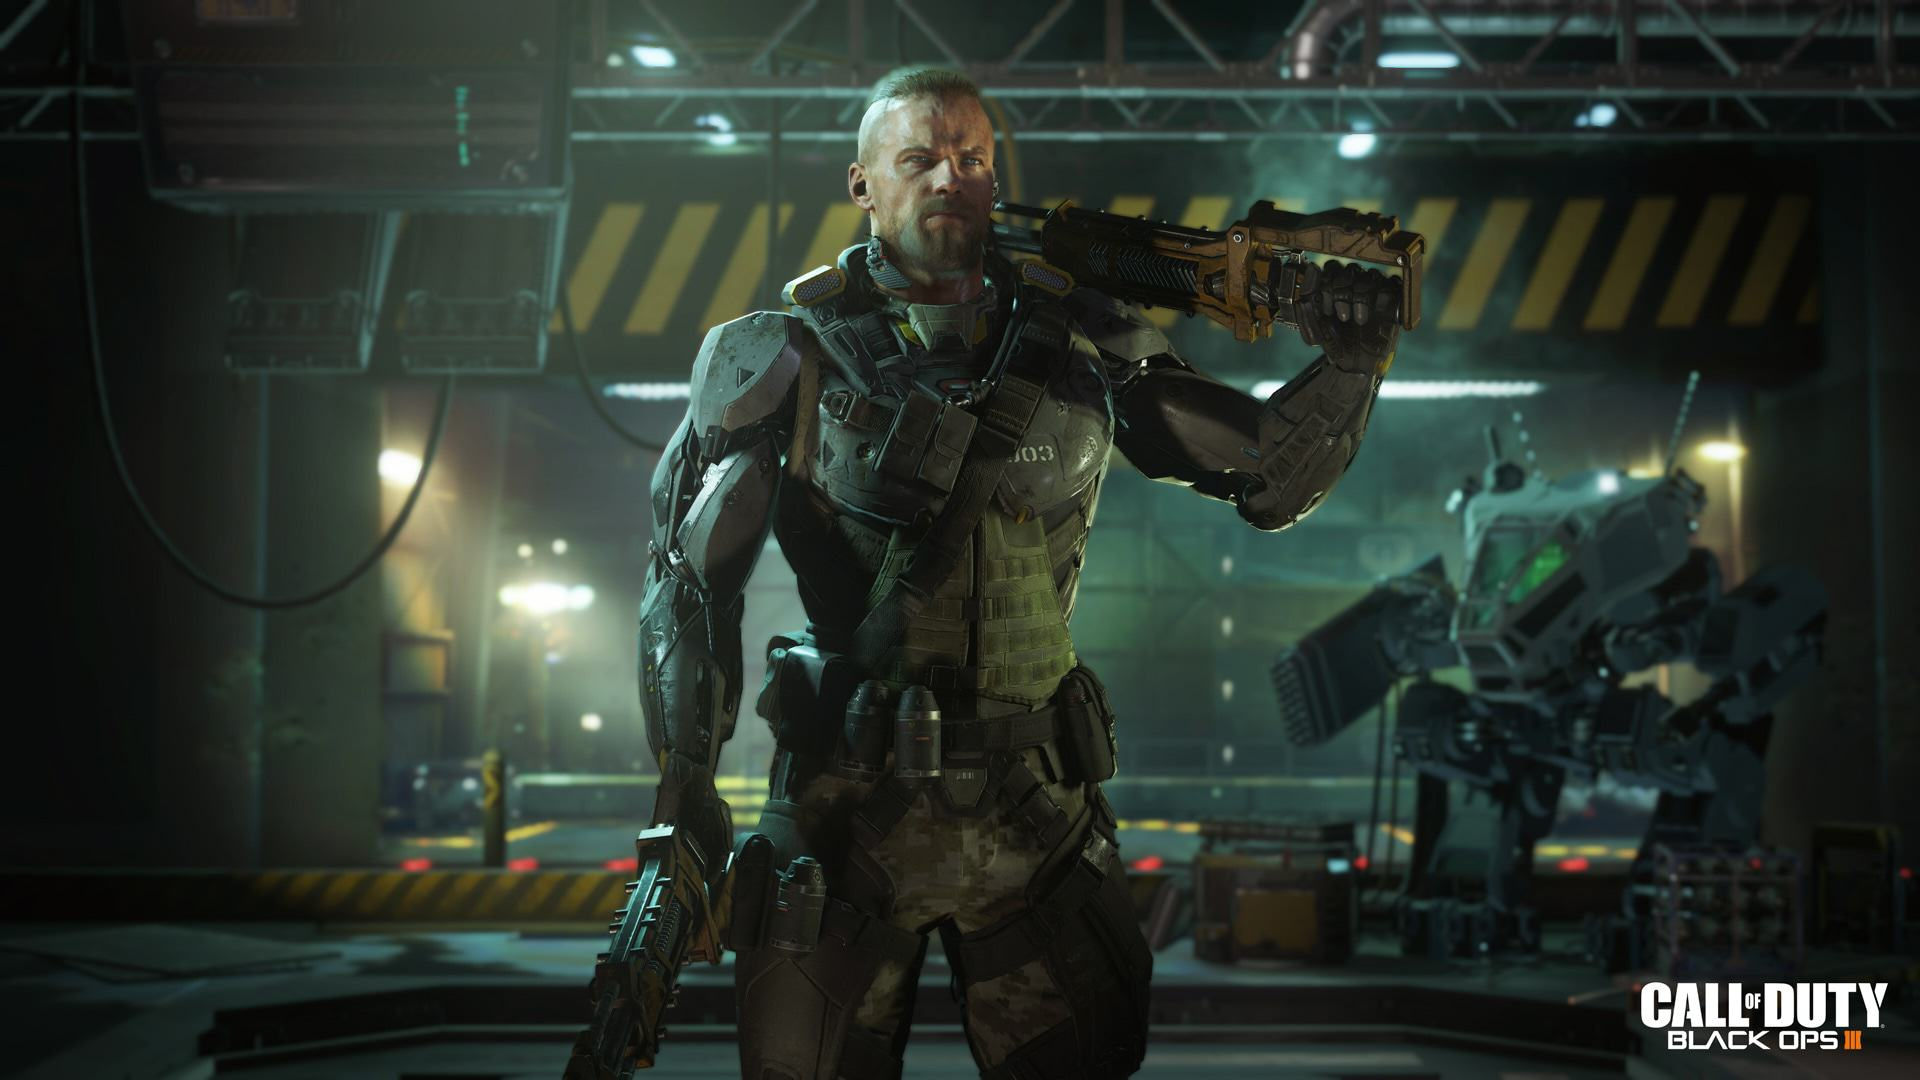 UNILAD Black Ops 3 Specialist Ruin48784 Call Of Duty: Black Ops III PC Version Will Get Modding Tools